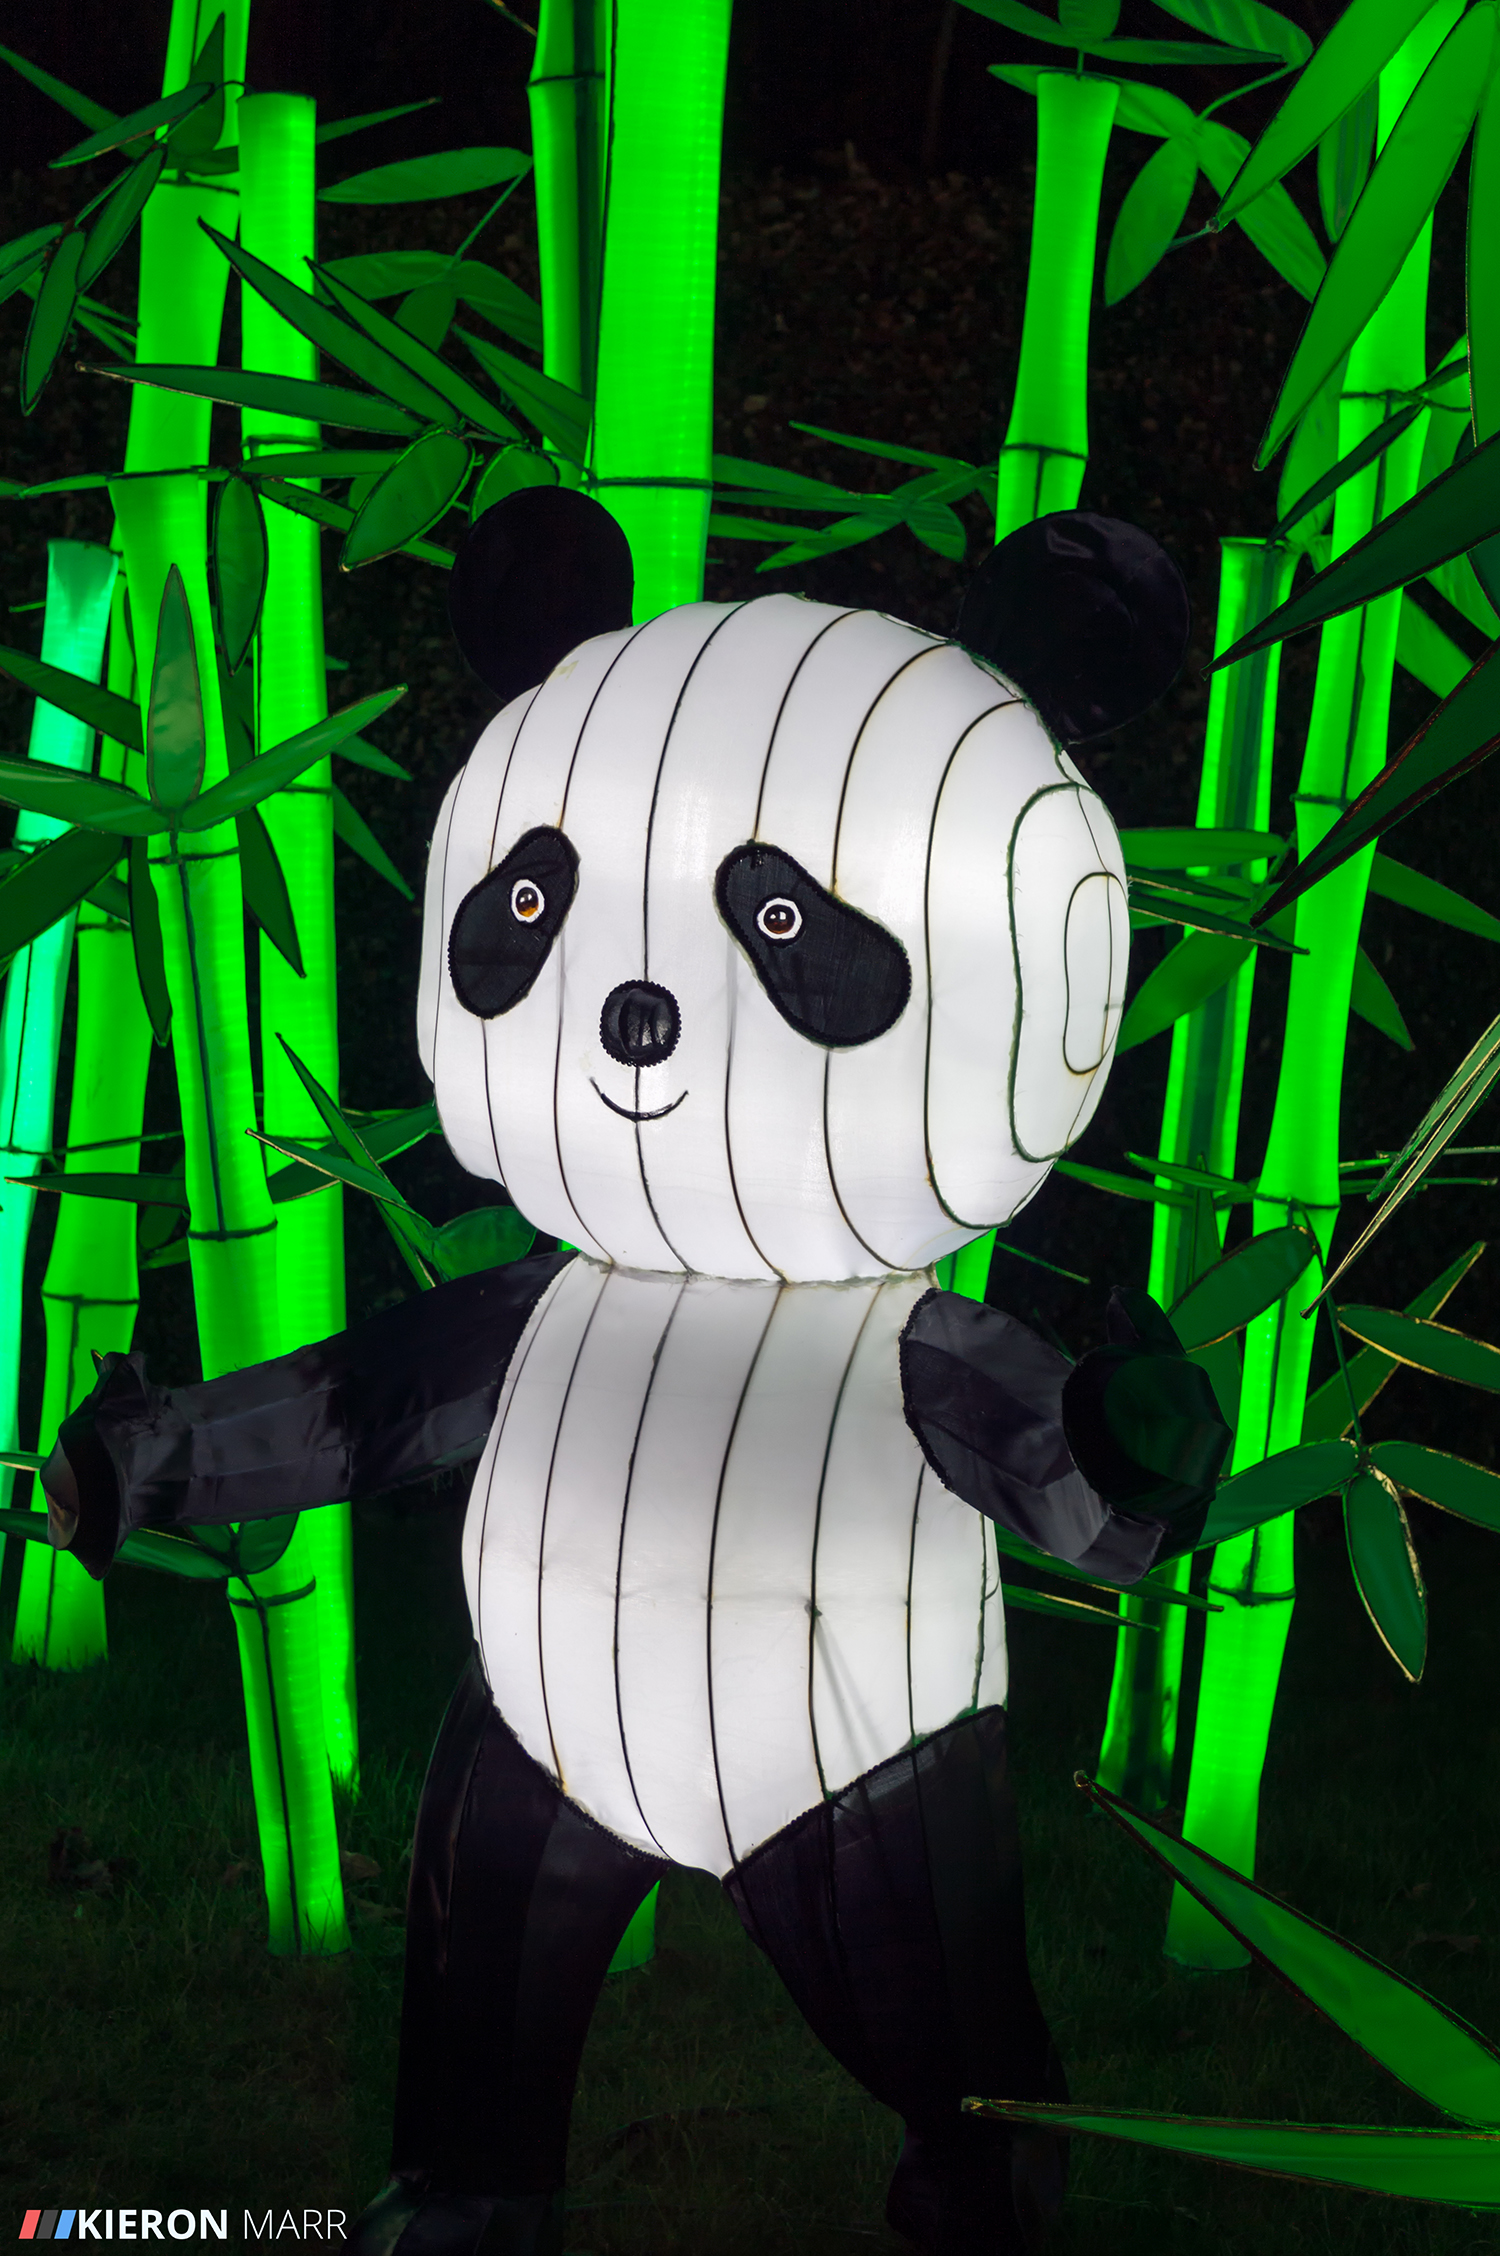 Longleat Festival of Light 2014 - Panda Garden